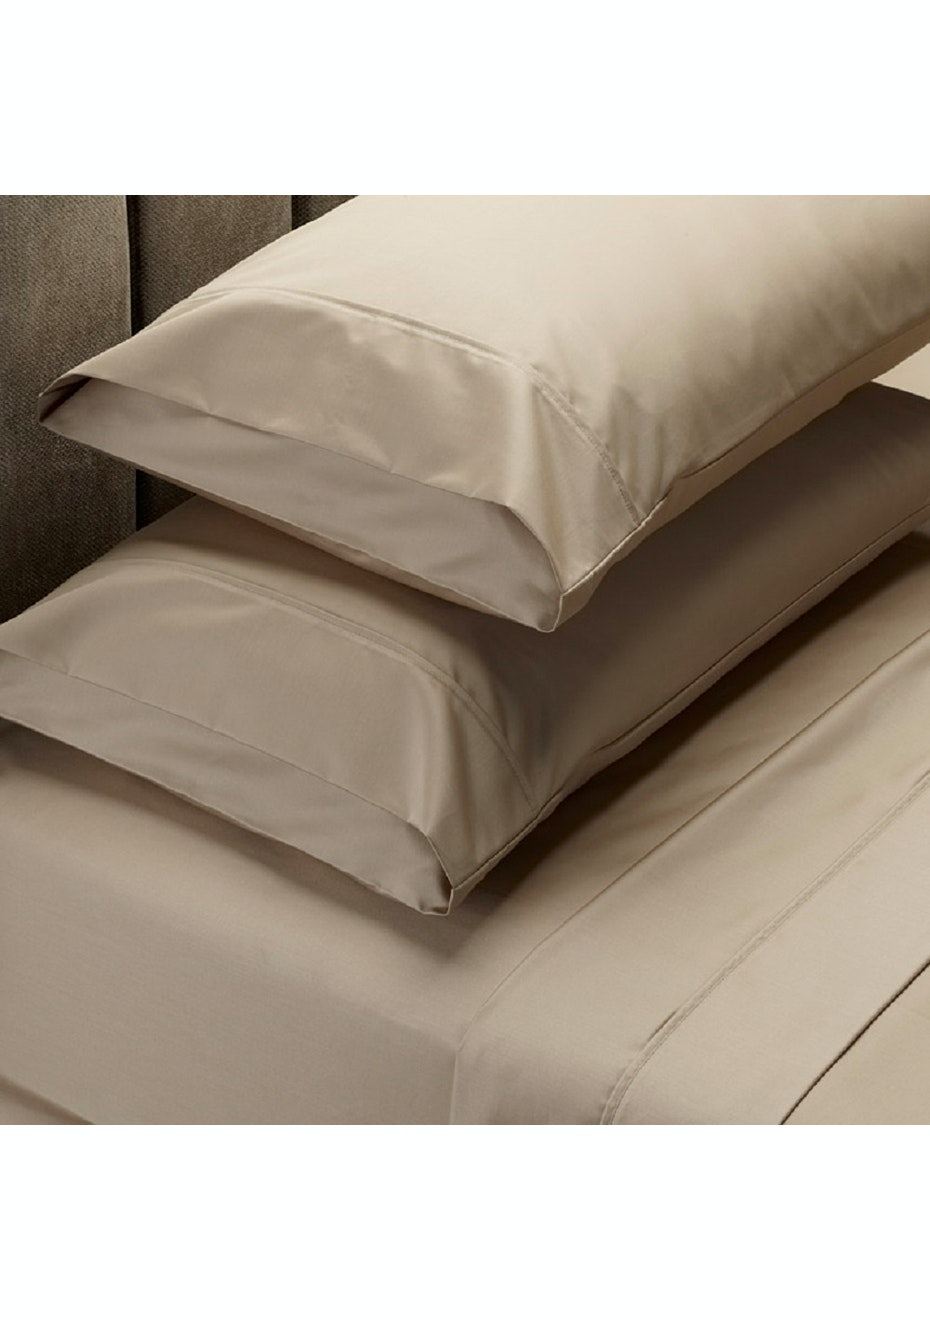 Park Avenue 1000 Thread count 100% Egyptian Cotton Sheet sets King - Oatmeal